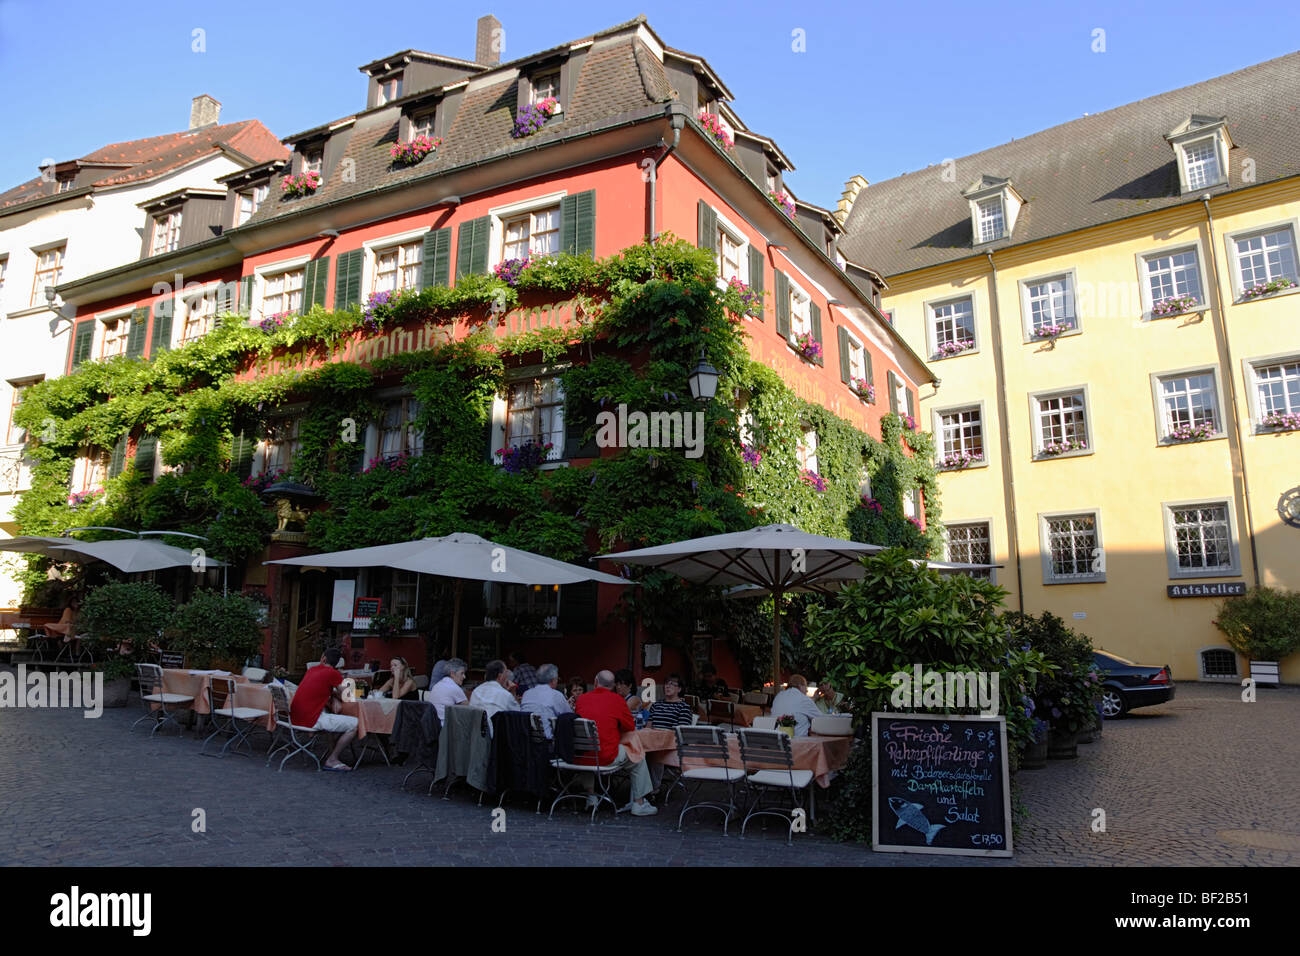 Guests sitting in a sidewalk cafe, Meersburg, Baden-Wurttemberg, Germany - Stock Image